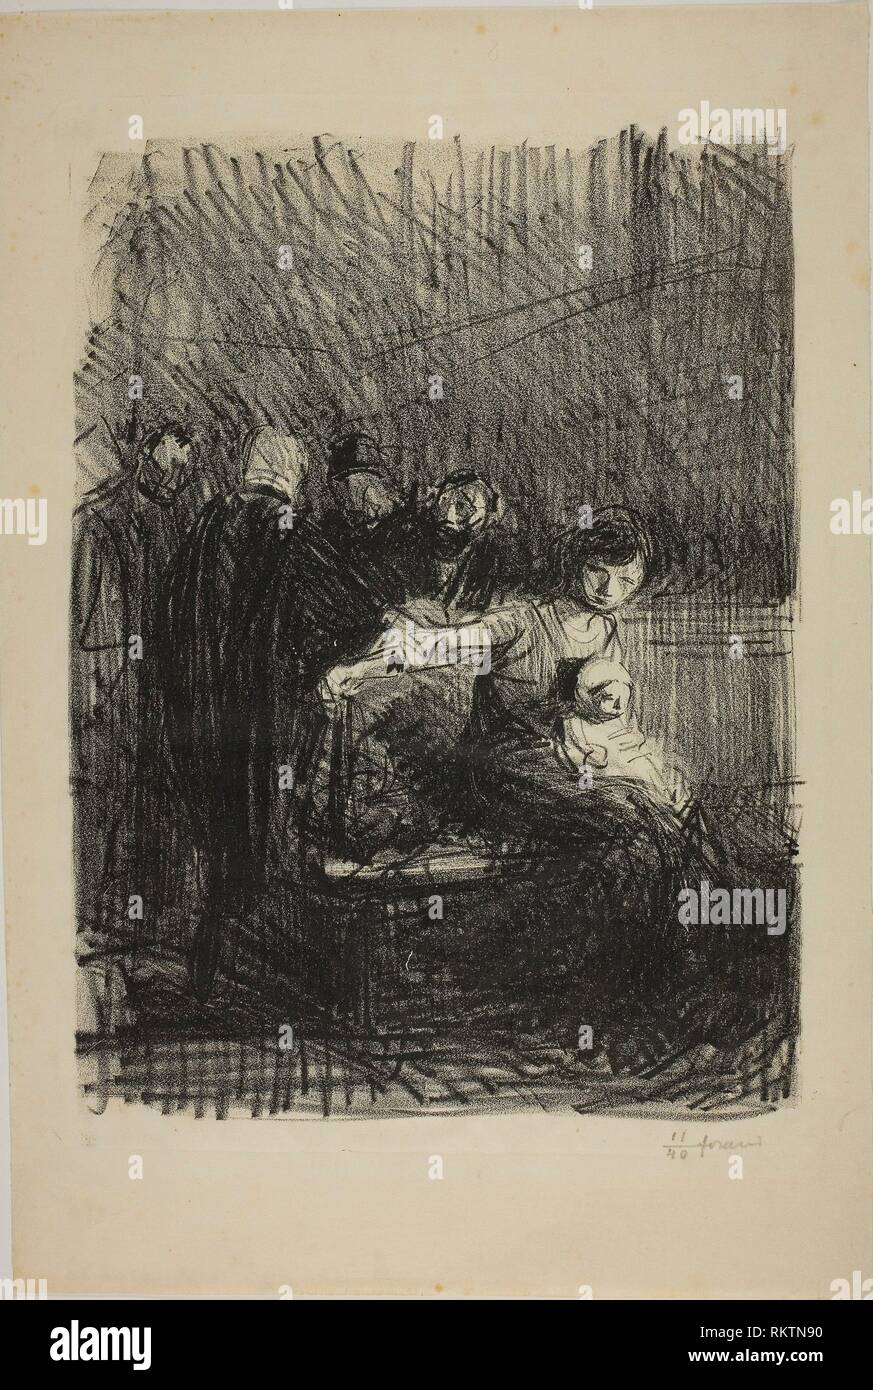 Recess of the Hearing - July 1914 - Jean Louis Forain French, 1852-1931 - Artist: Jean Louis Forain, Origin: France, Date: 1914, Medium: Lithograph - Stock Image